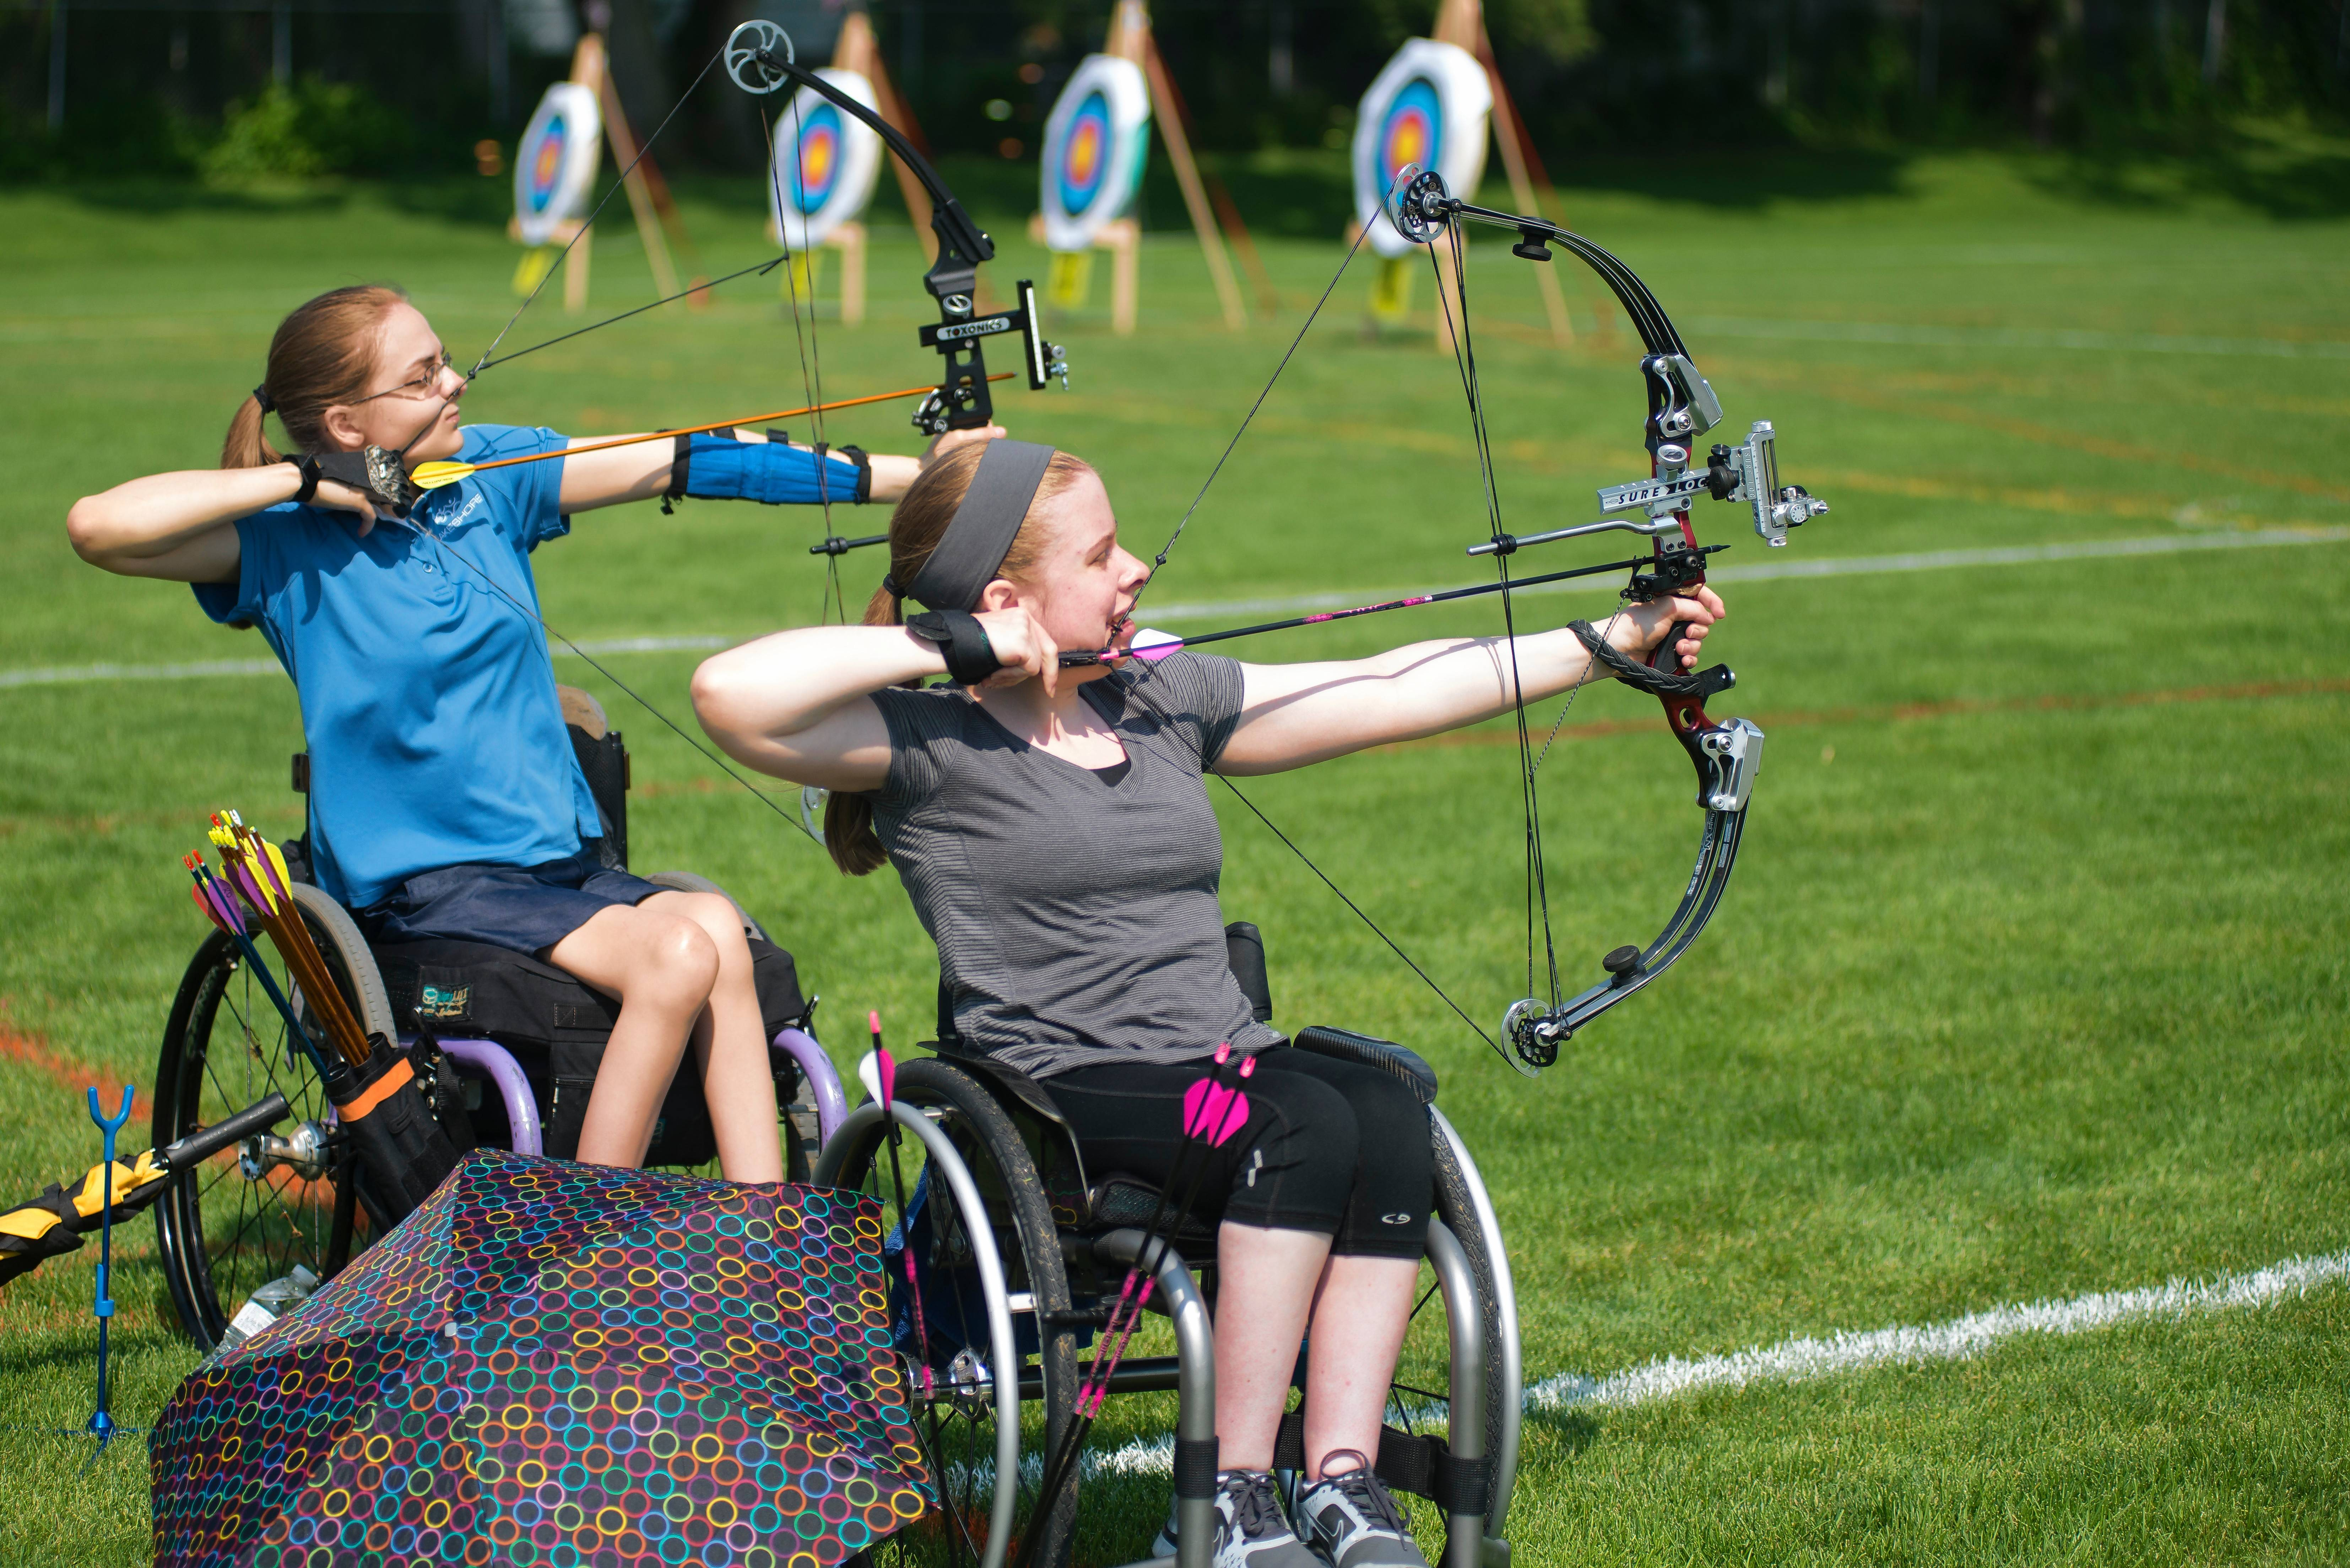 Archers with the Great Lakes Adaptive Sports Association take aim. GLASA will host the 2017 Adult National Open and Great Lakes Regional Games from Friday through Sunday, June 9-11, at Lake Forest High School and Loyola Academy.